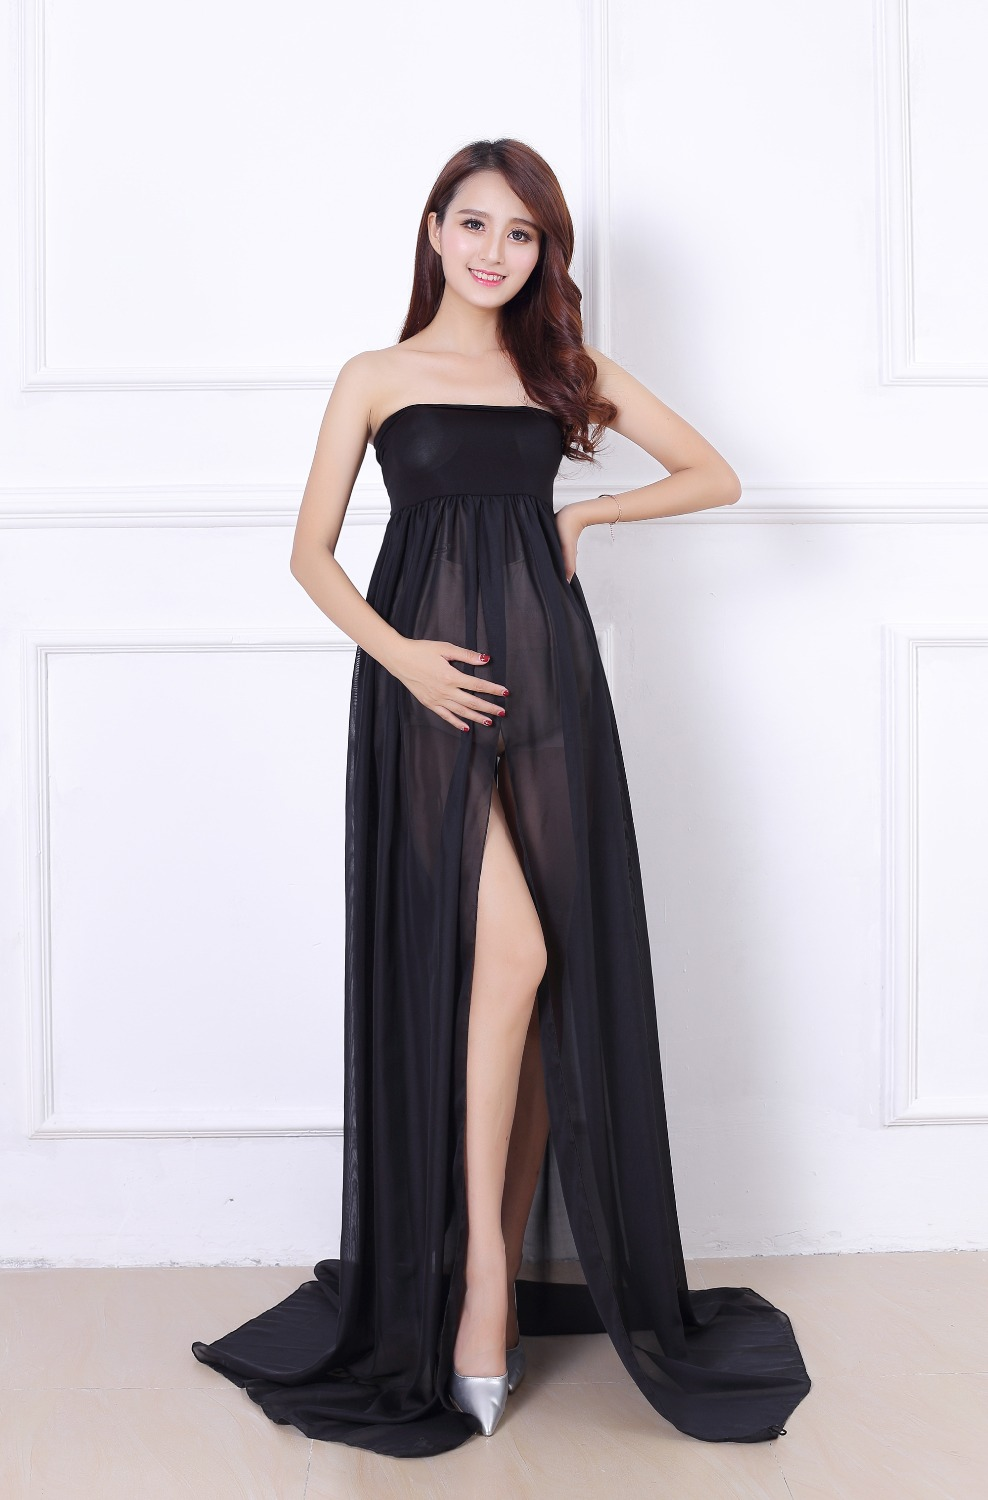 Black maternity dress long maxy floor dresses for pregnant women black maternity dress long maxy floor dresses for pregnant women photography shoots ball gown chiffon beach dresses pregnancy in dresses from mother kids ombrellifo Choice Image